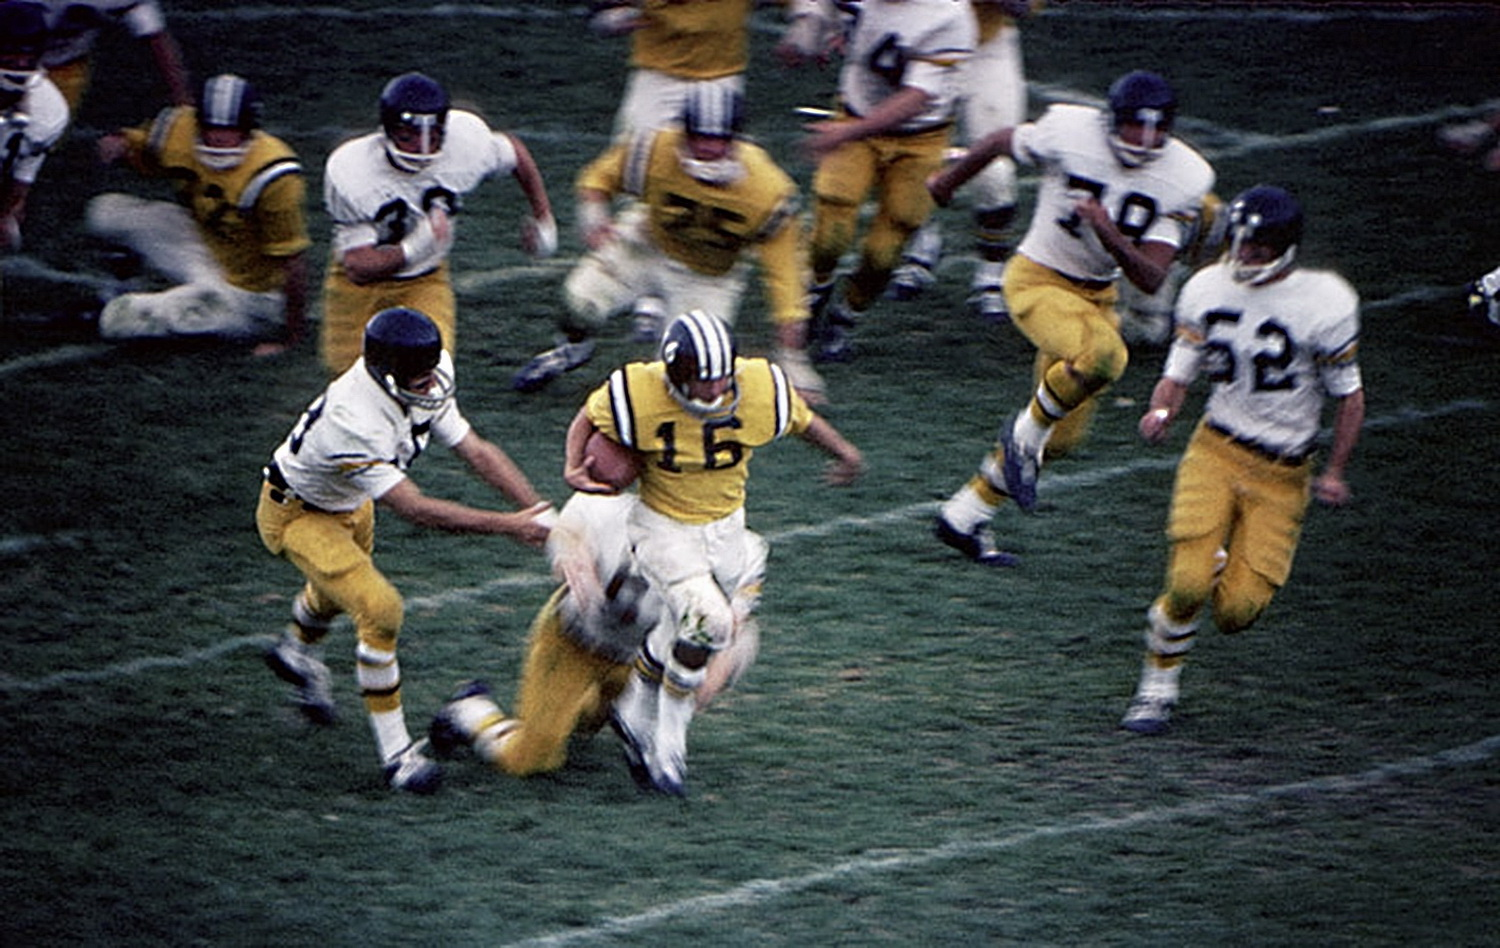 In the beginning:Dave Lanahao runs 99 yards from scrimmage. (Colorado College vs Colorado Mines) 1967. © 2015 David Burnett/Contact Press Images